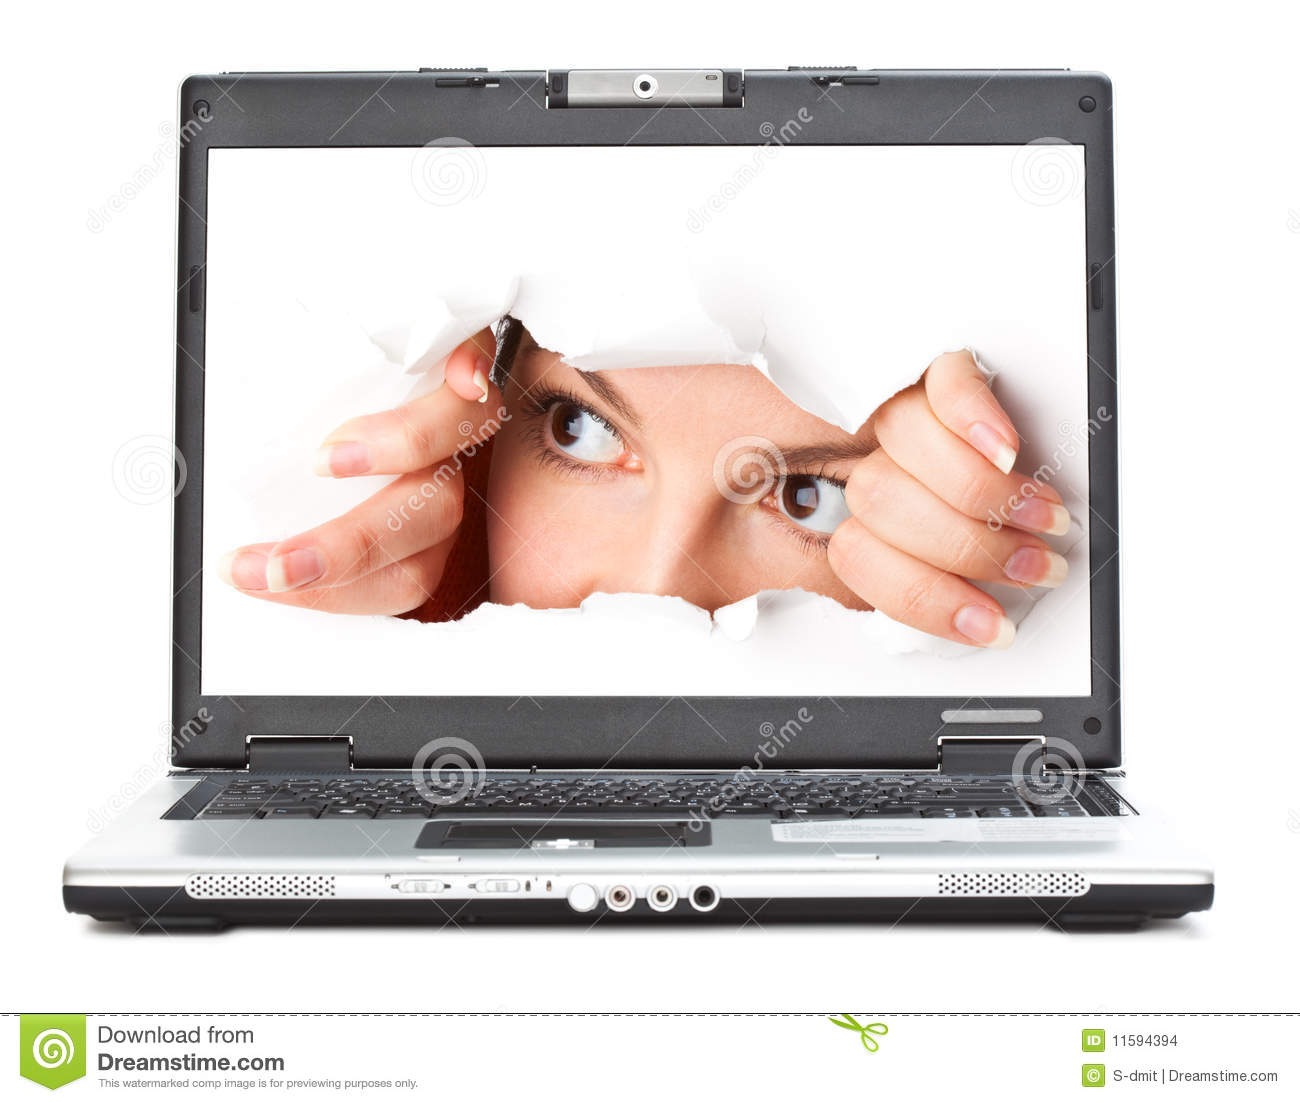 Eye looking through hole in screen of laptop